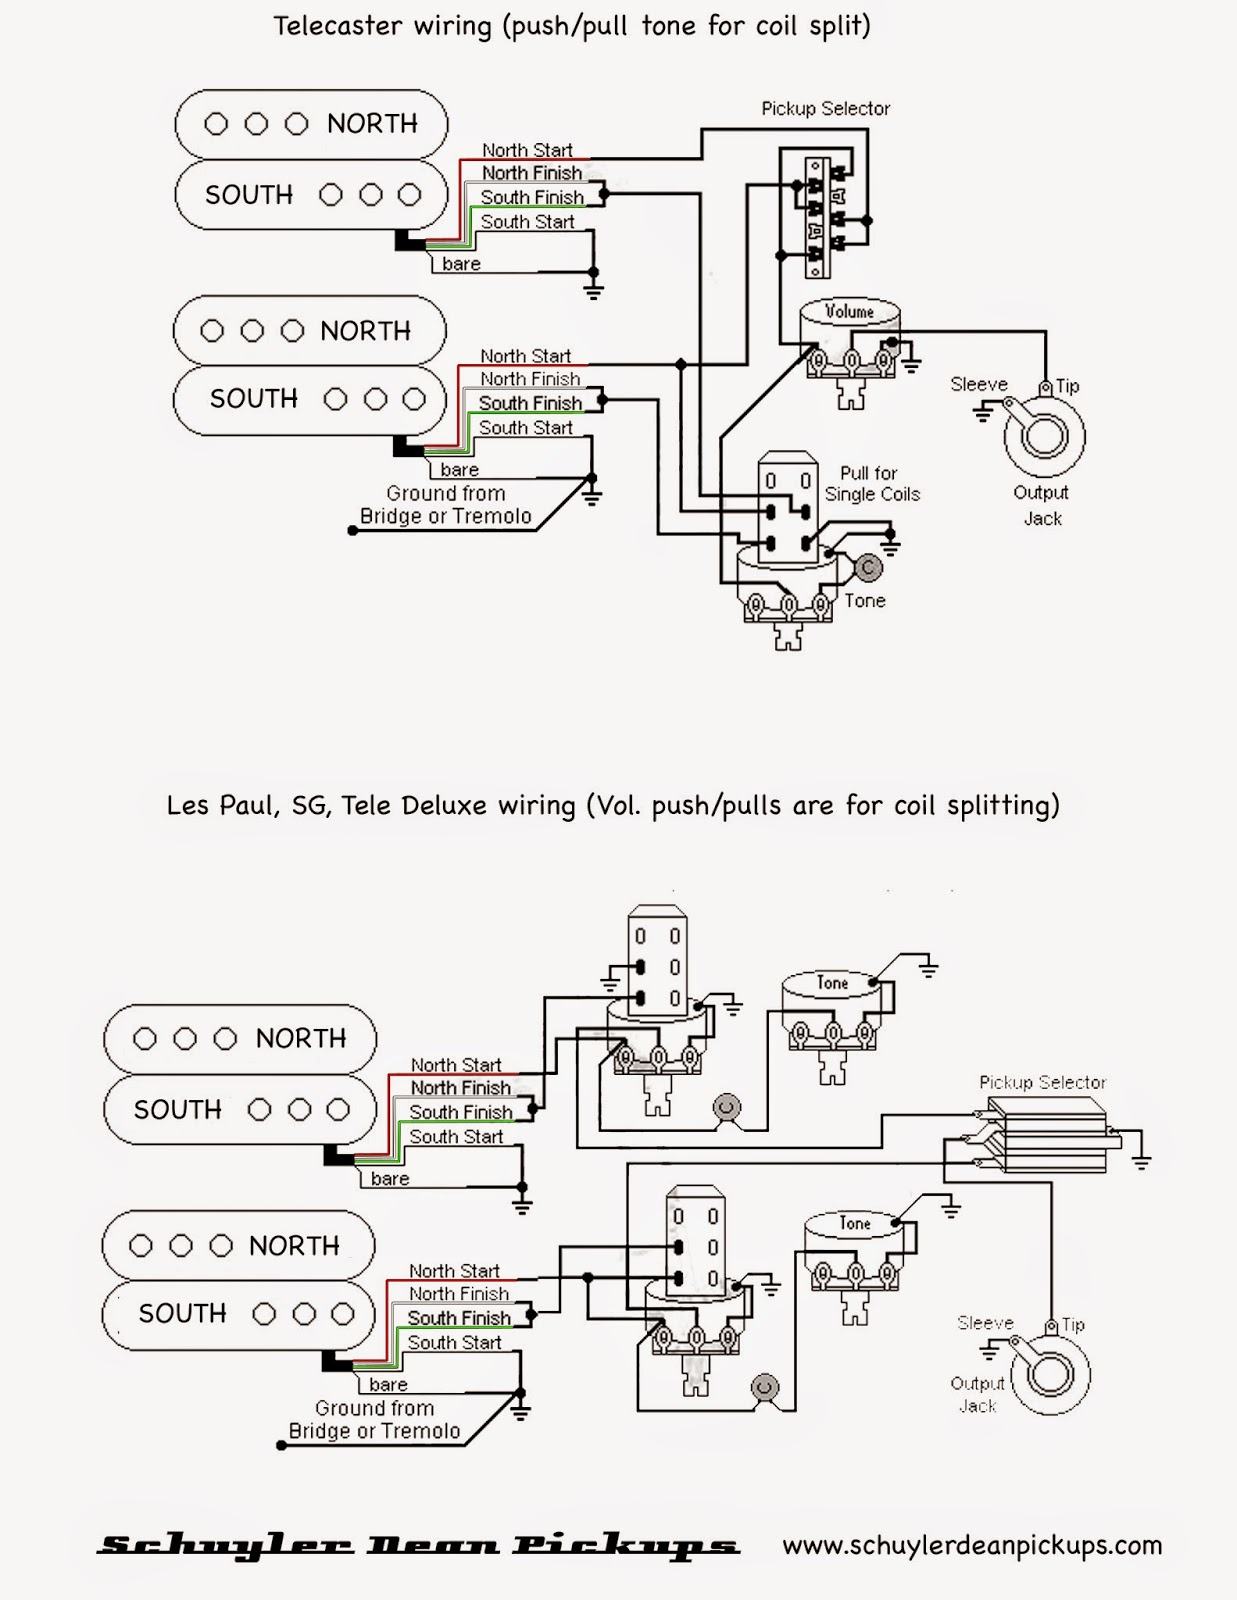 Wiring%2Bdiagram%2BTele LP?resize=665%2C860 coil splitting wiring diagram les paul the best wiring diagram 2017 coil split wiring harness 2v 1t at gsmx.co